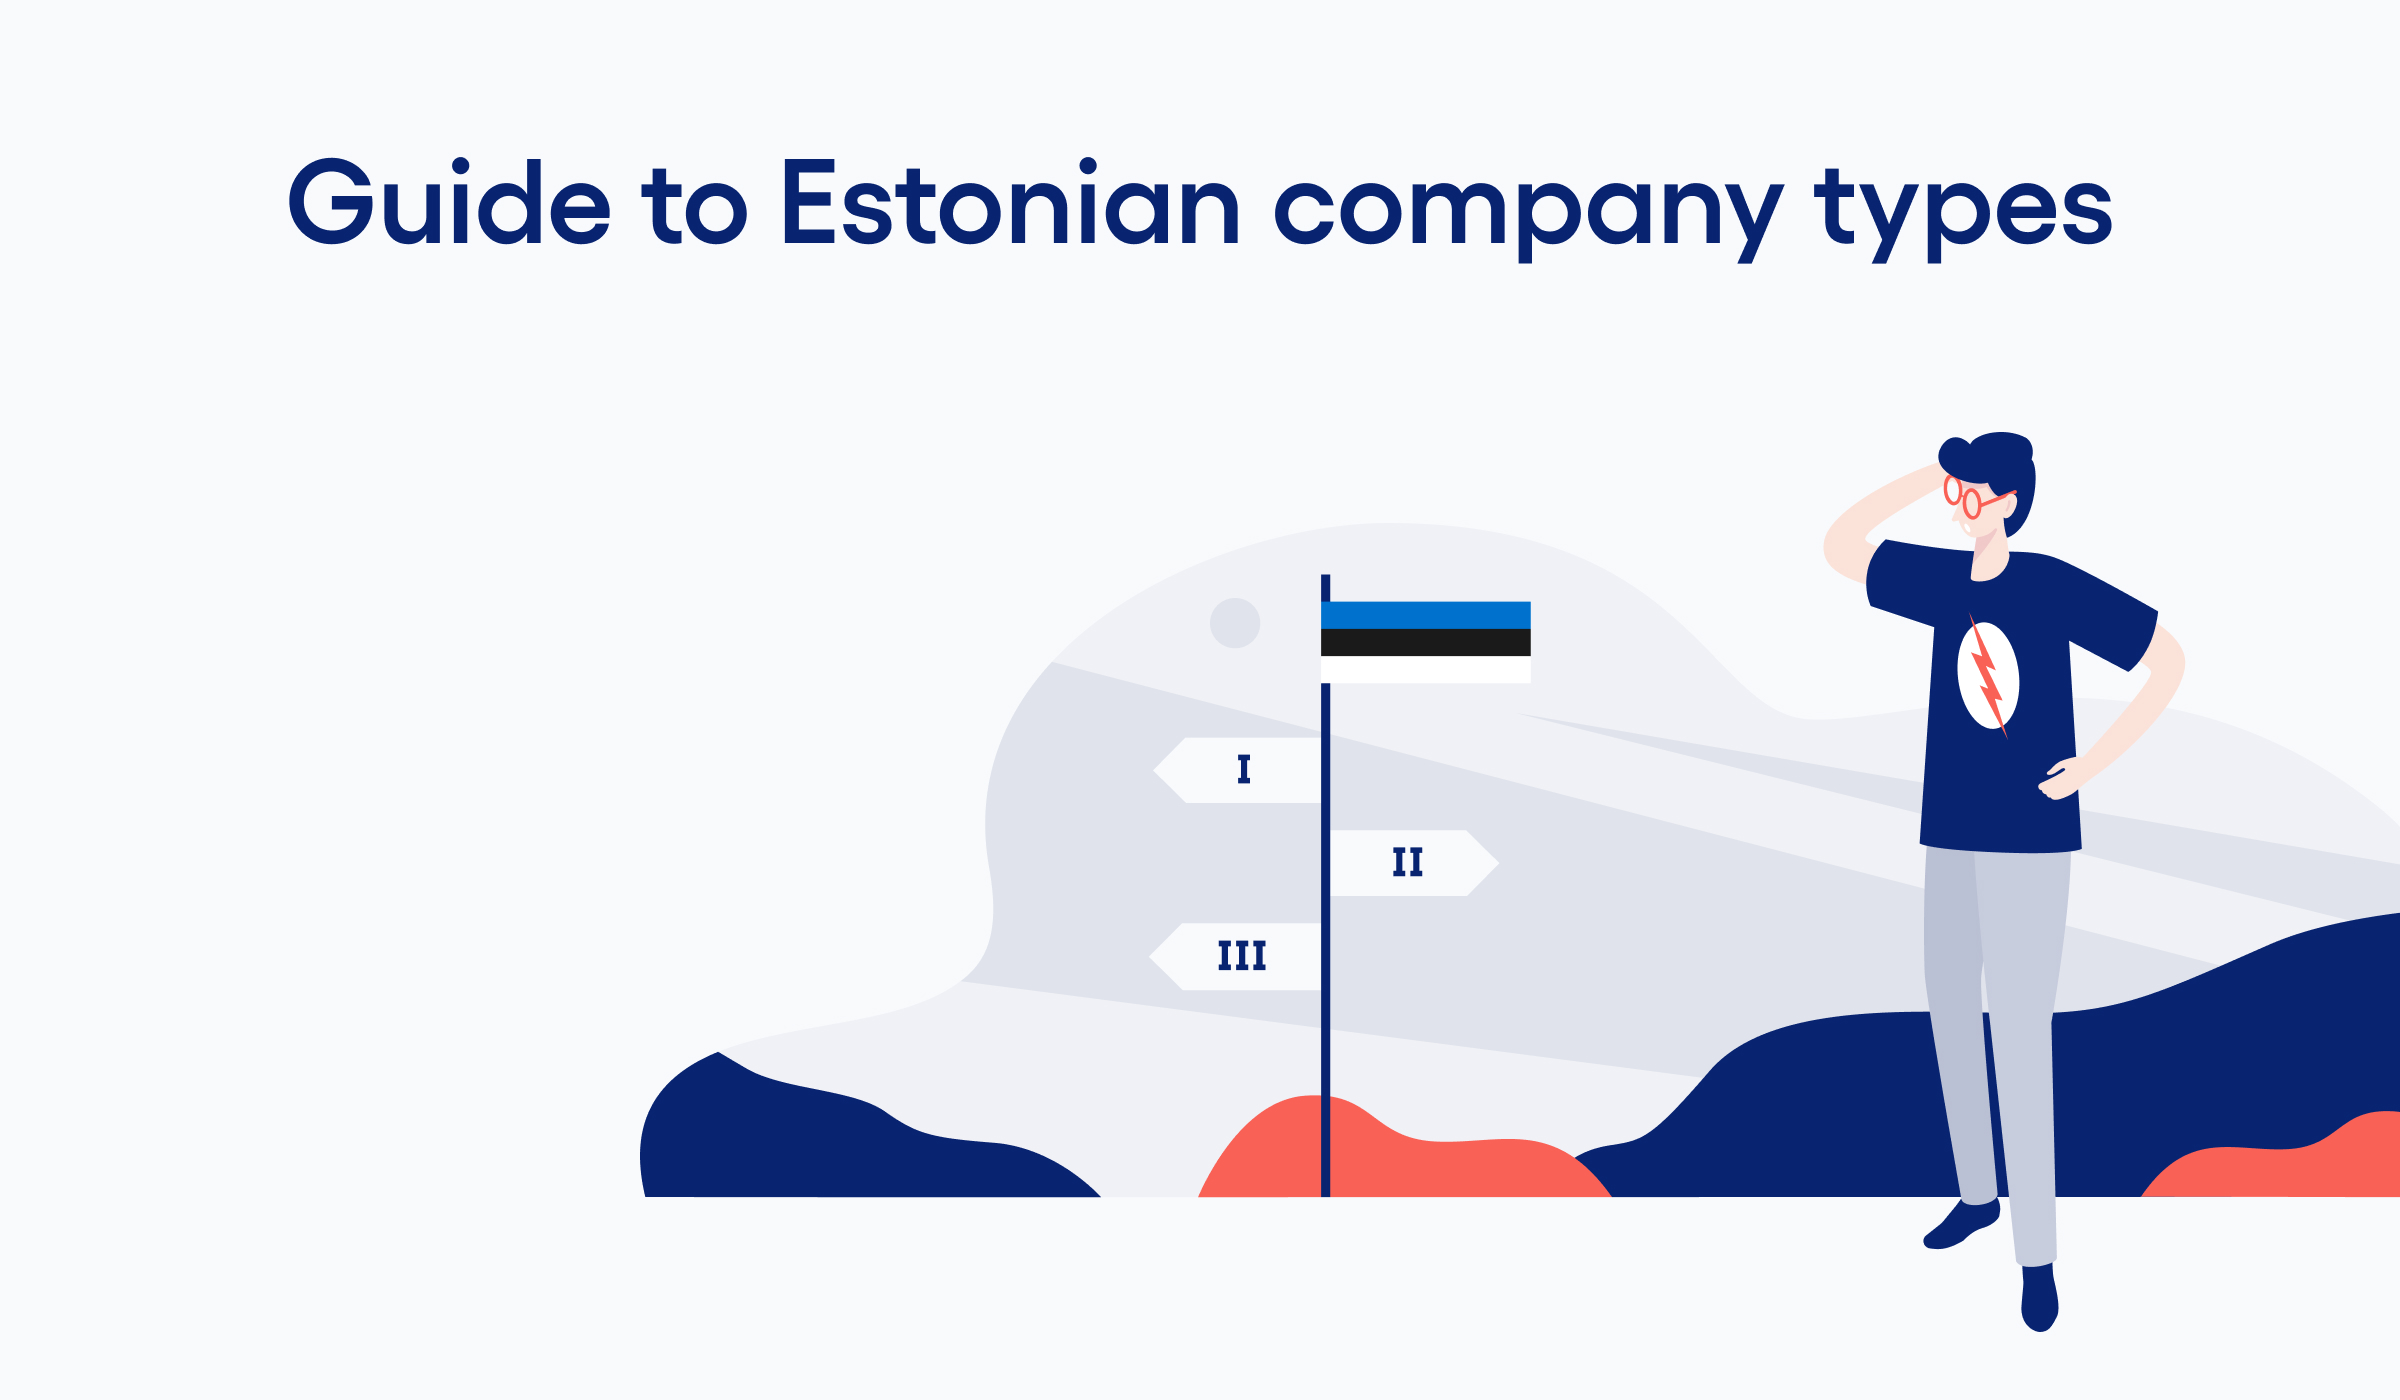 Estonian company types — a guide to choosing the right one